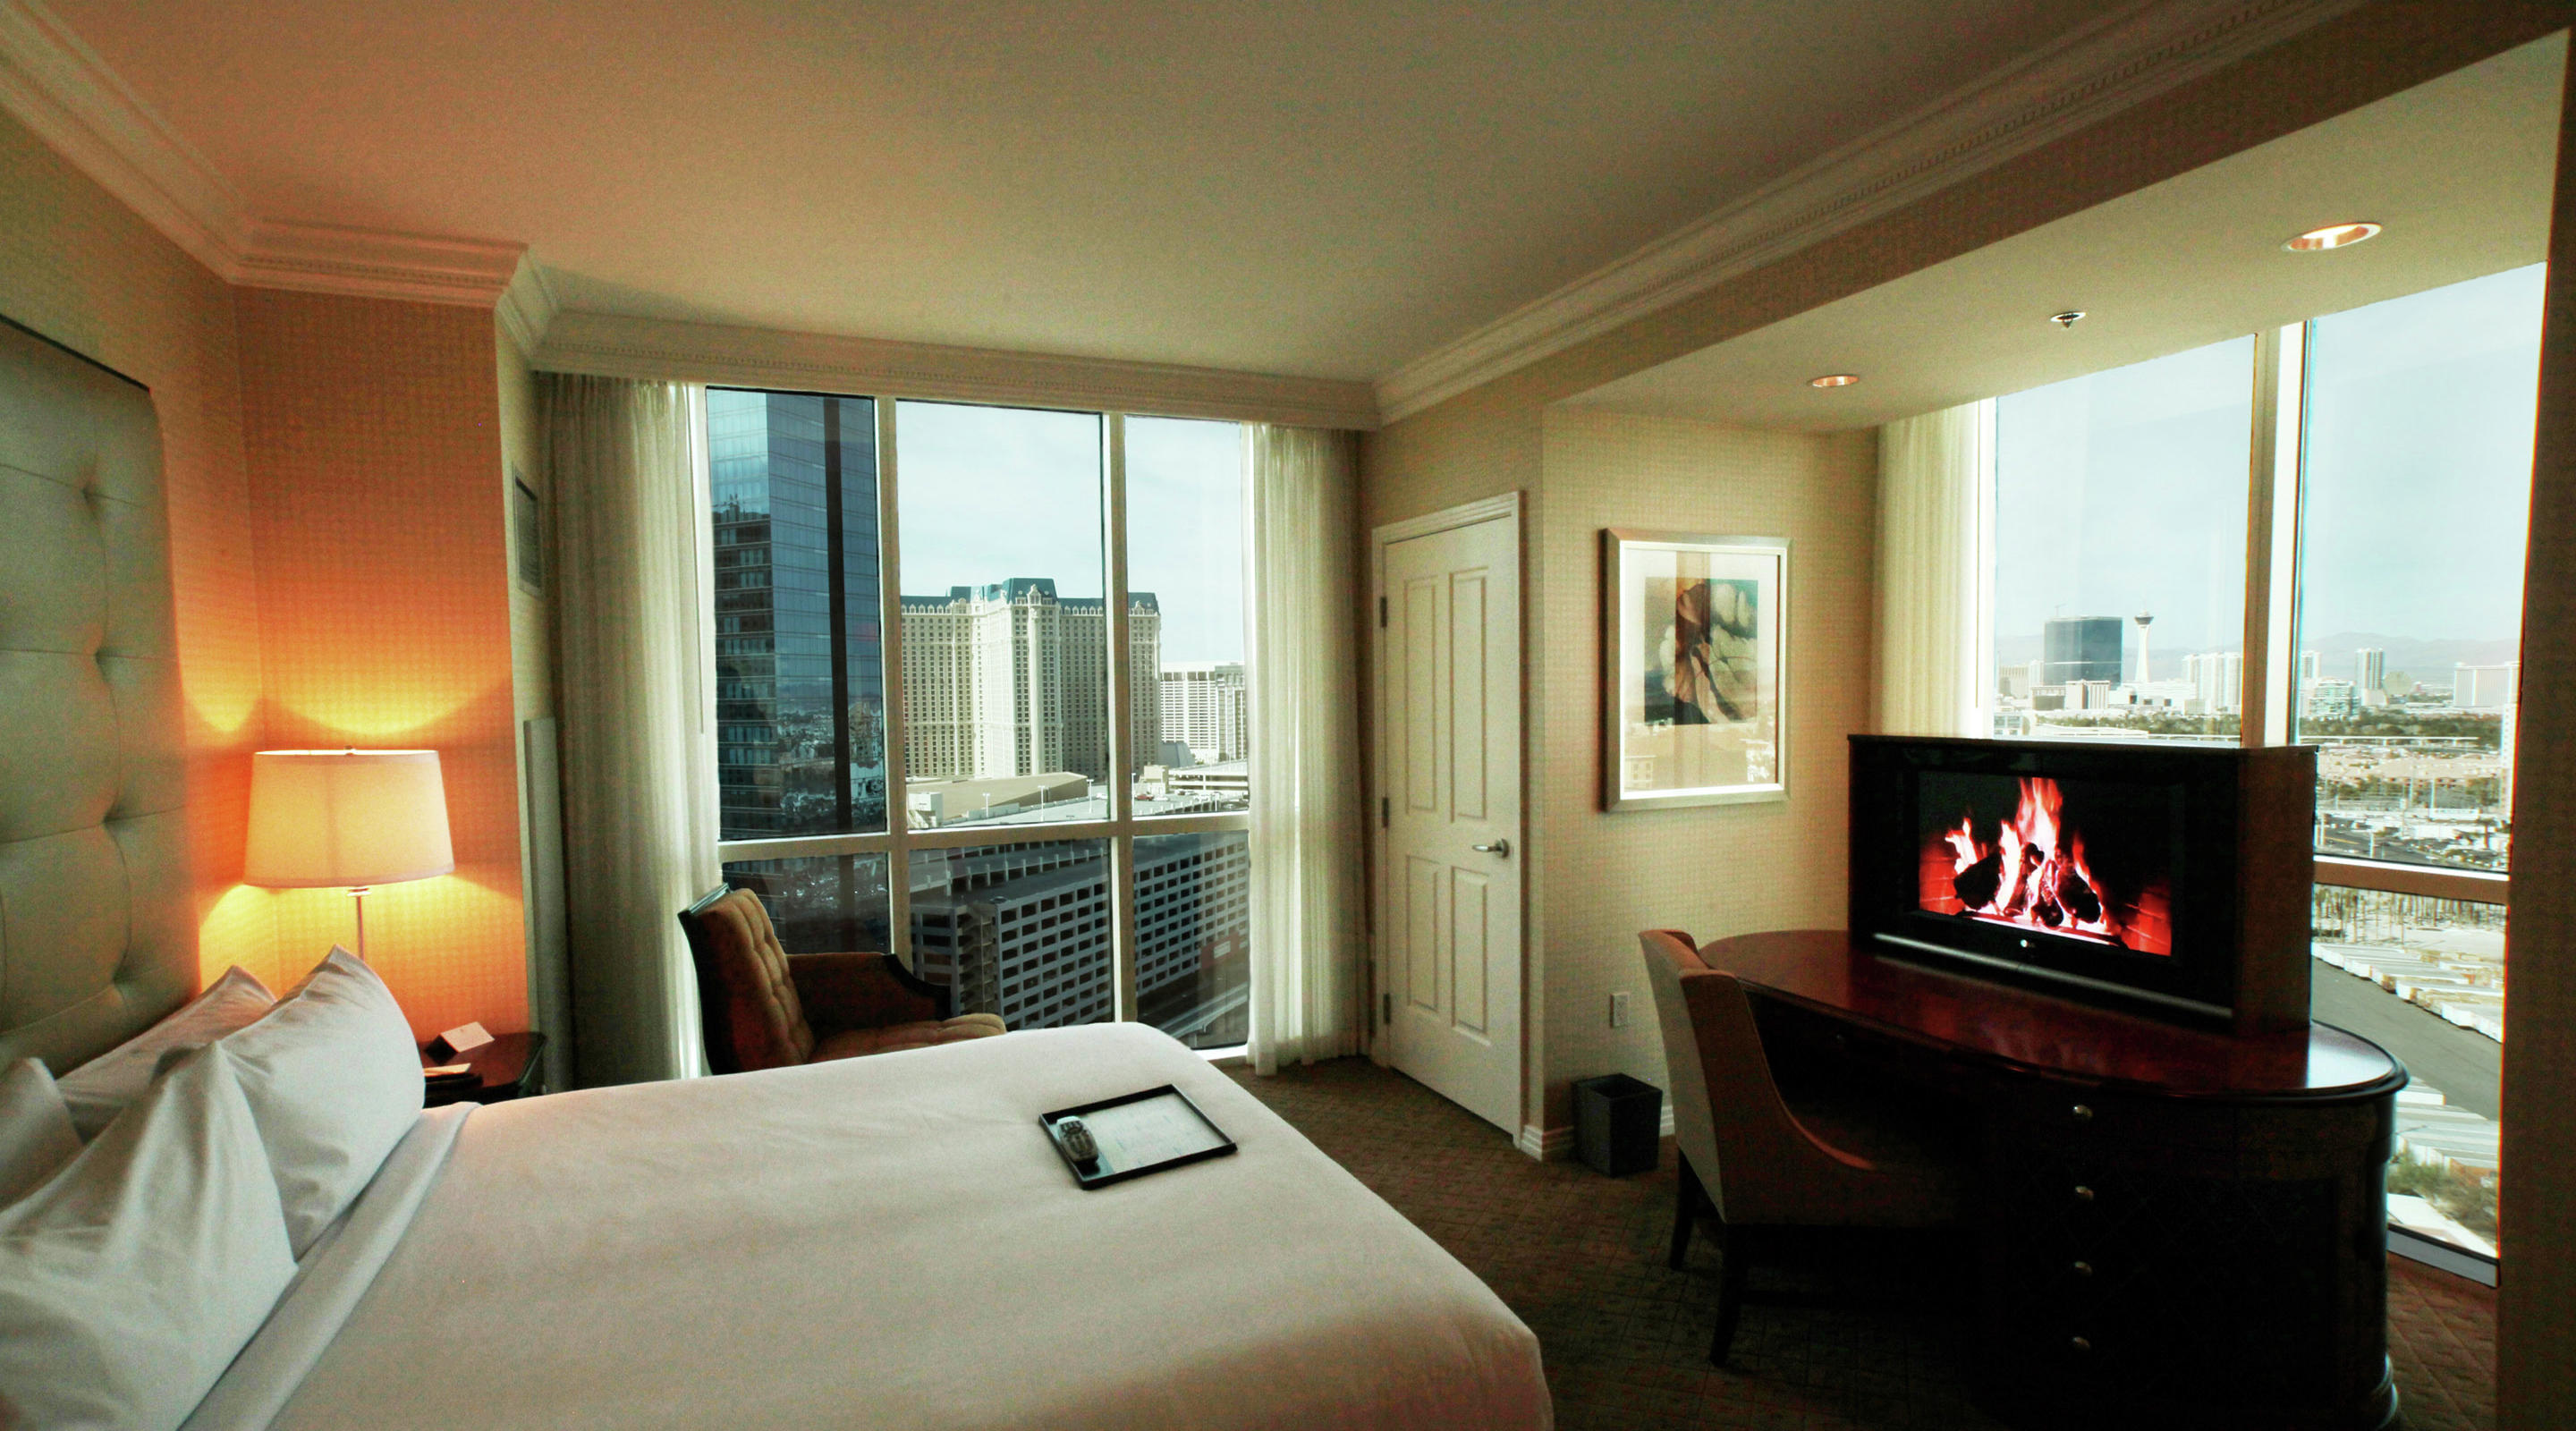 One bedroom balcony suite the signature at mgm grand - Mgm grand las vegas suites with 2 bedrooms ...